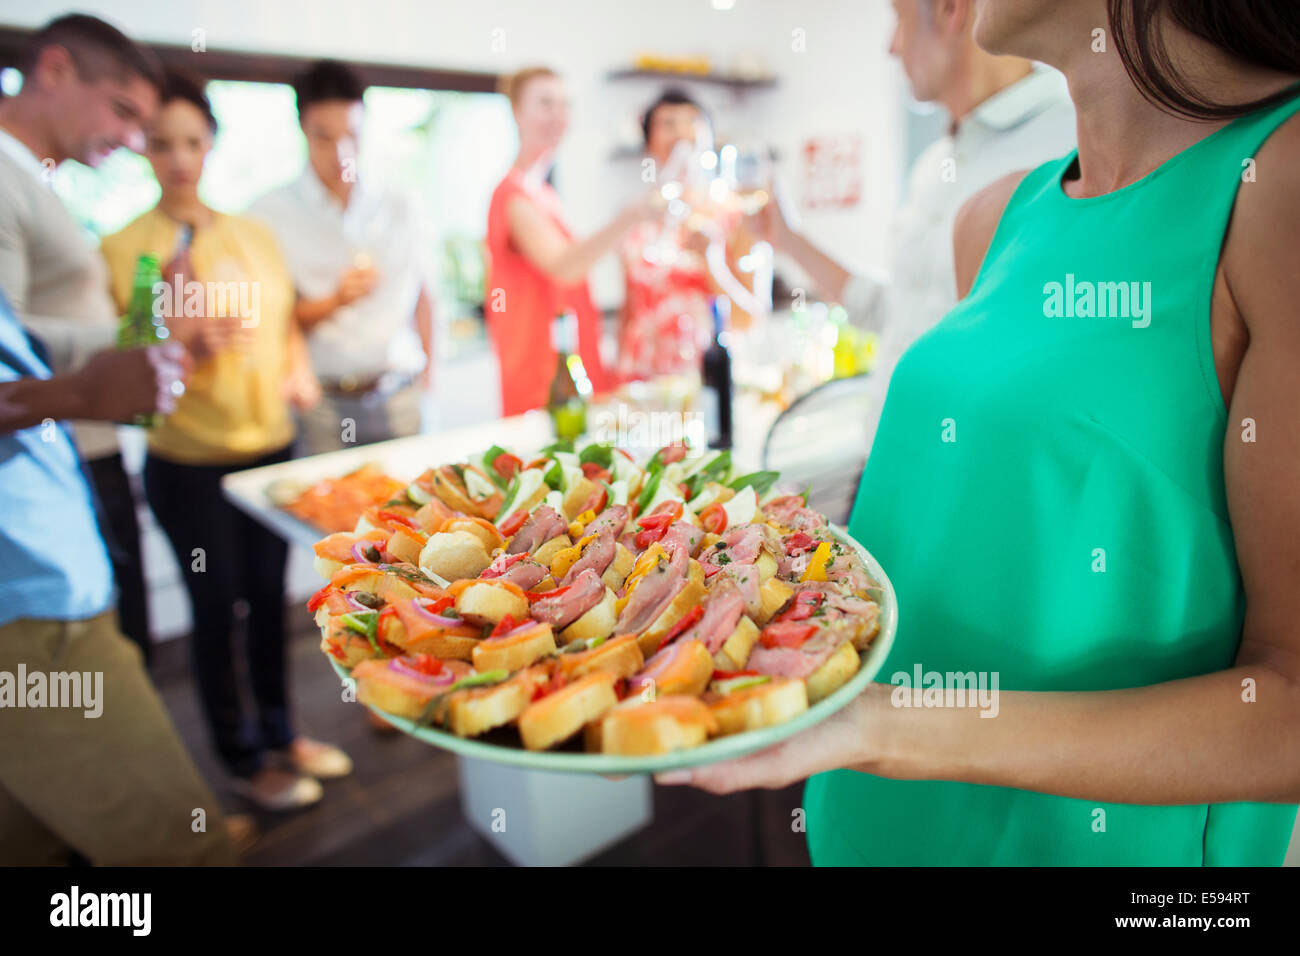 Woman serving tray of food at party - Stock Image